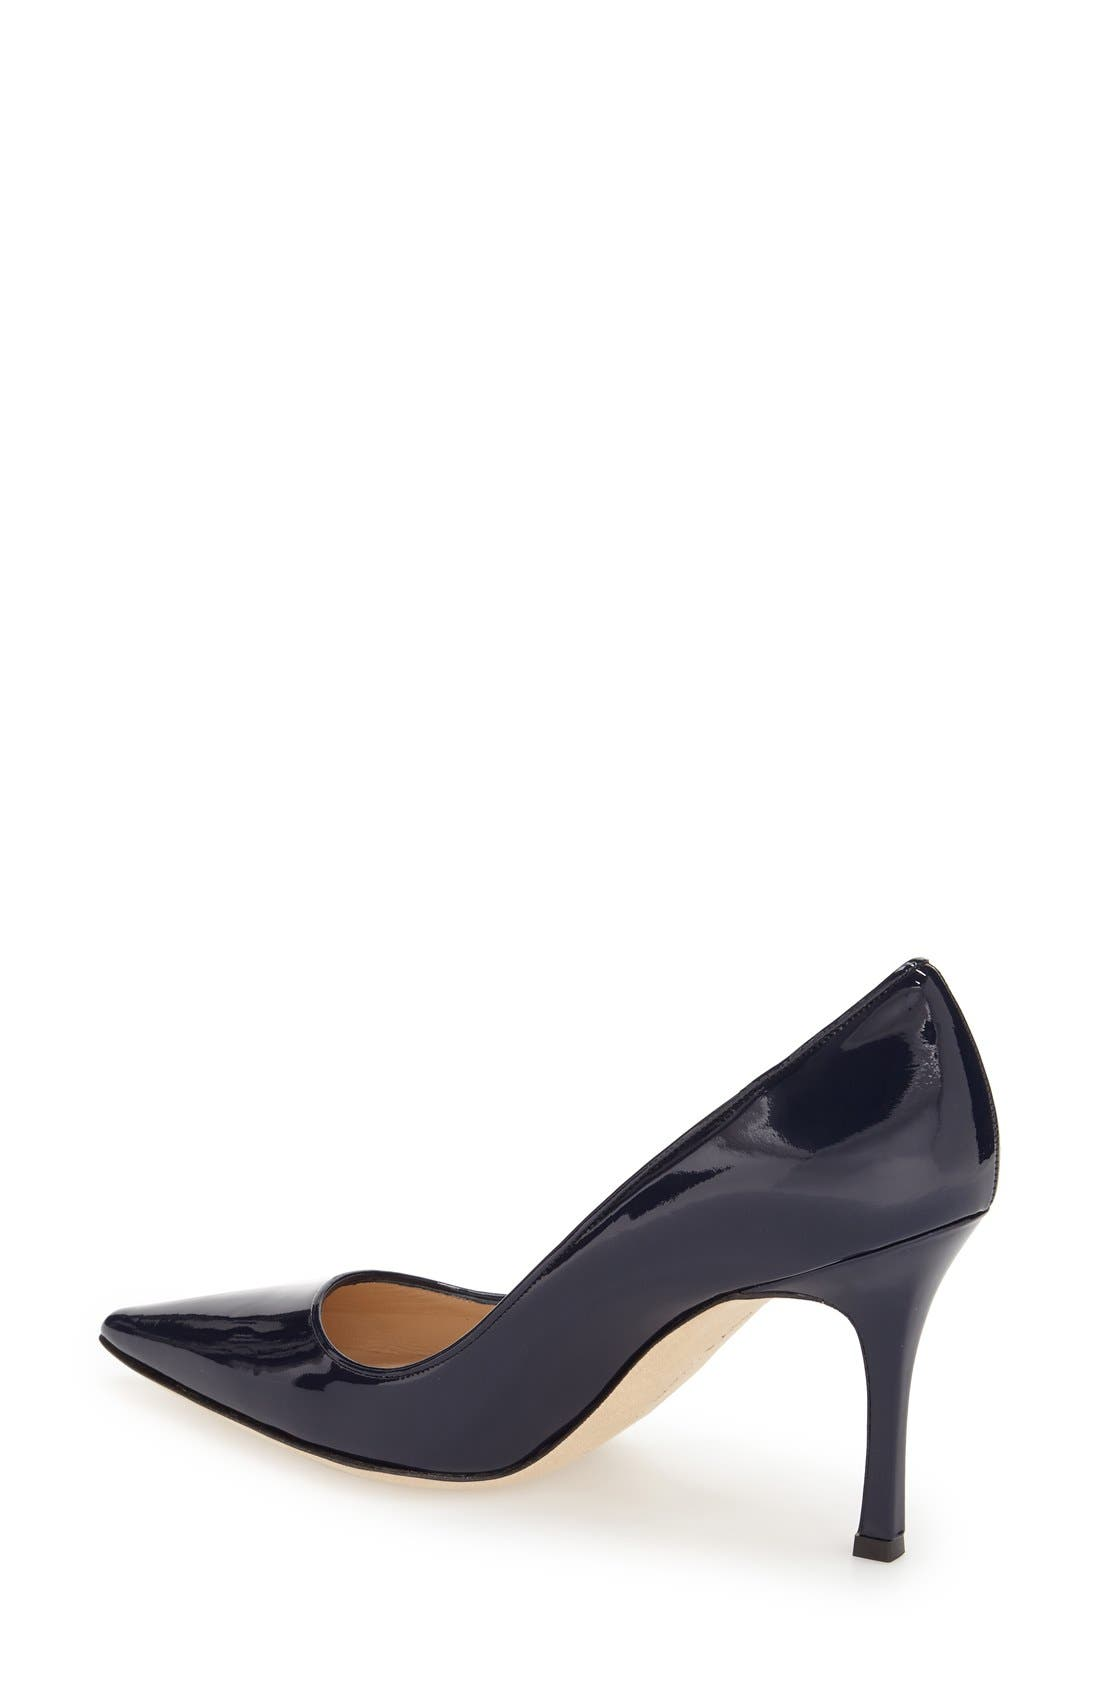 Alternate Image 2  - Manolo Blahnik 'Newcio' Pump (Women)